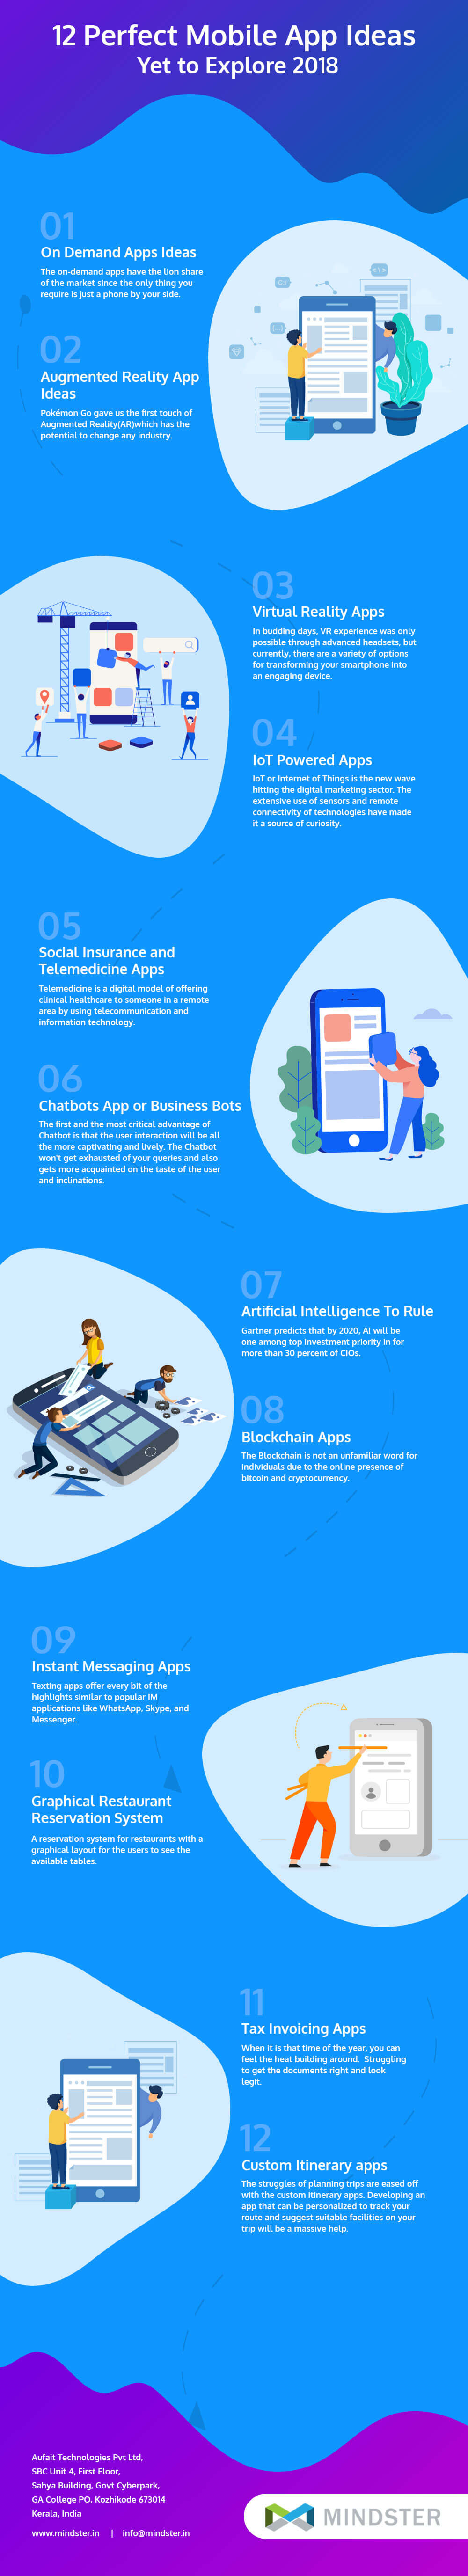 12 Creative New Mobile App Ideas in 2019 [Infographic]